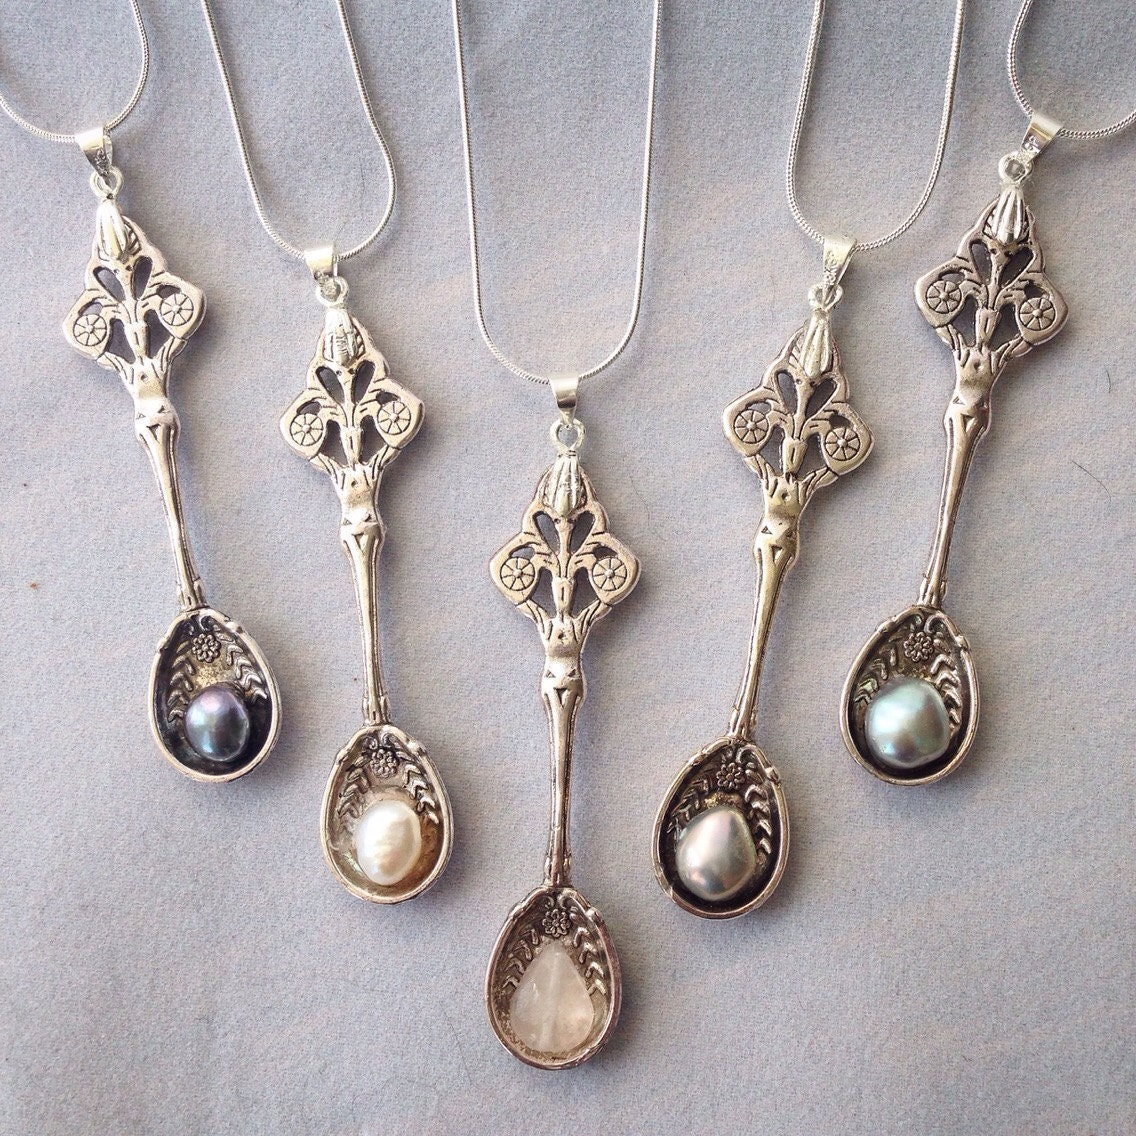 snuff spoon necklace with freshwater pearls by